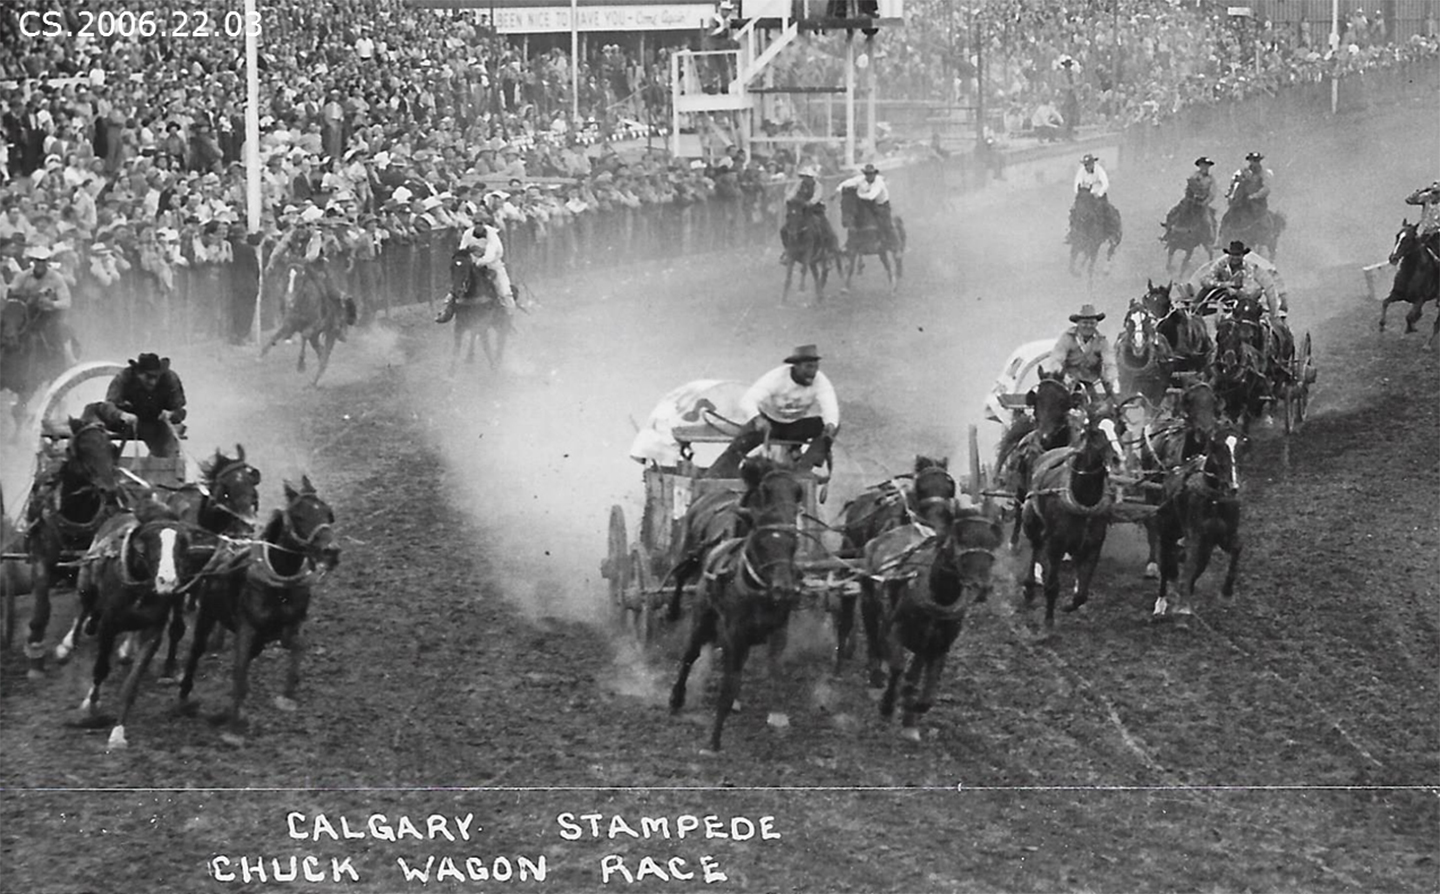 Historical Photos Chuckwagon Race Calgary Stampede